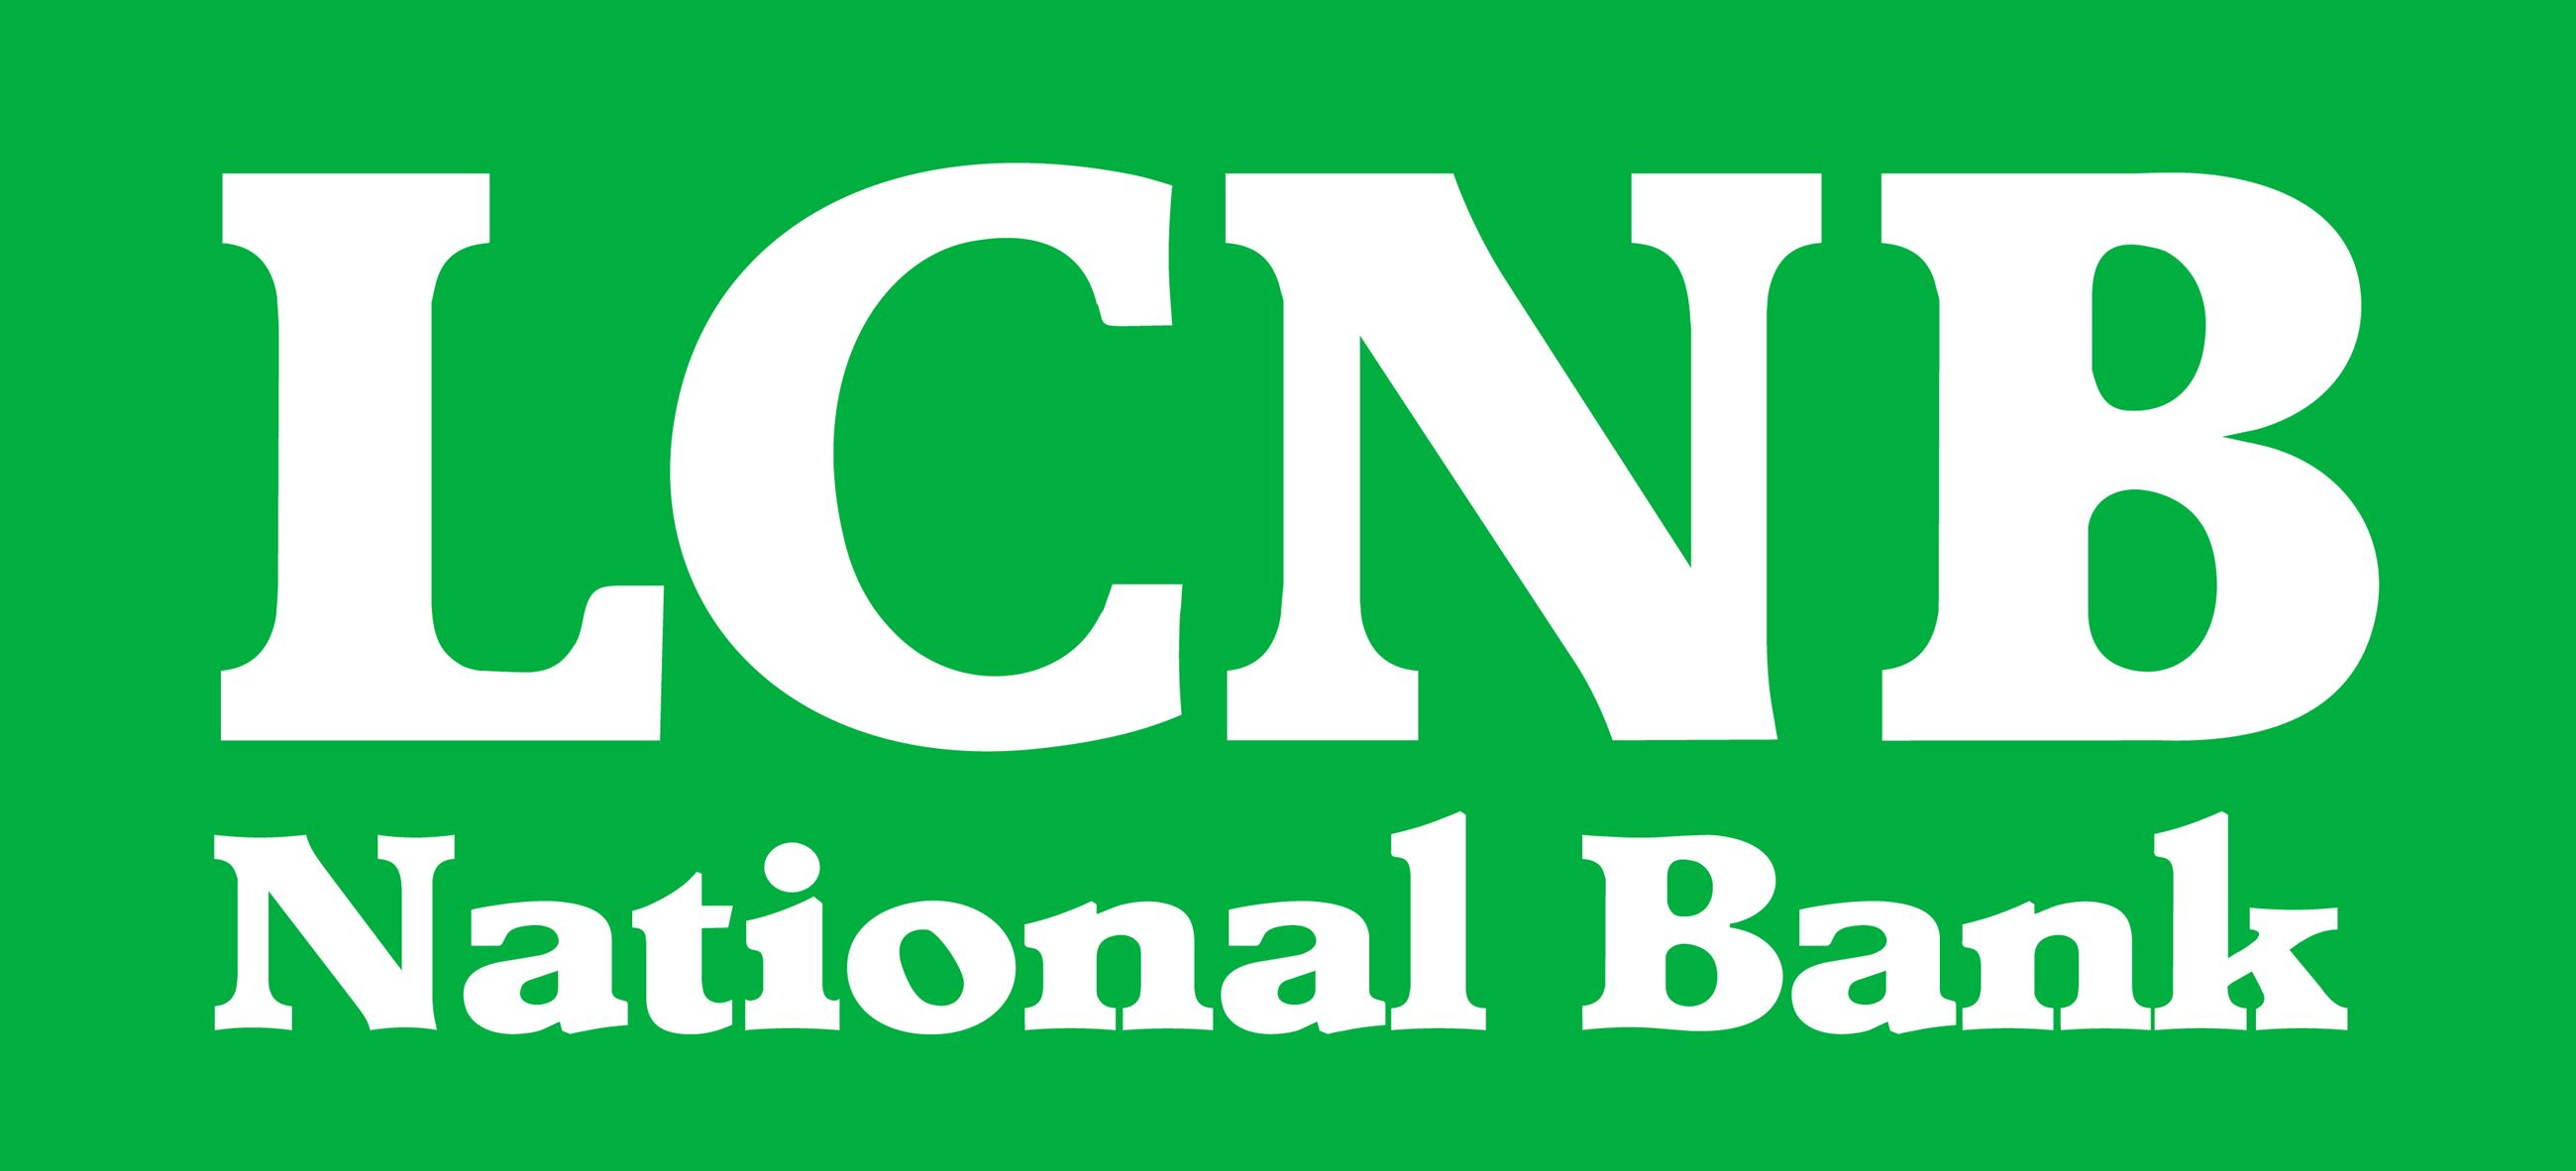 LCNB natiional bank logo